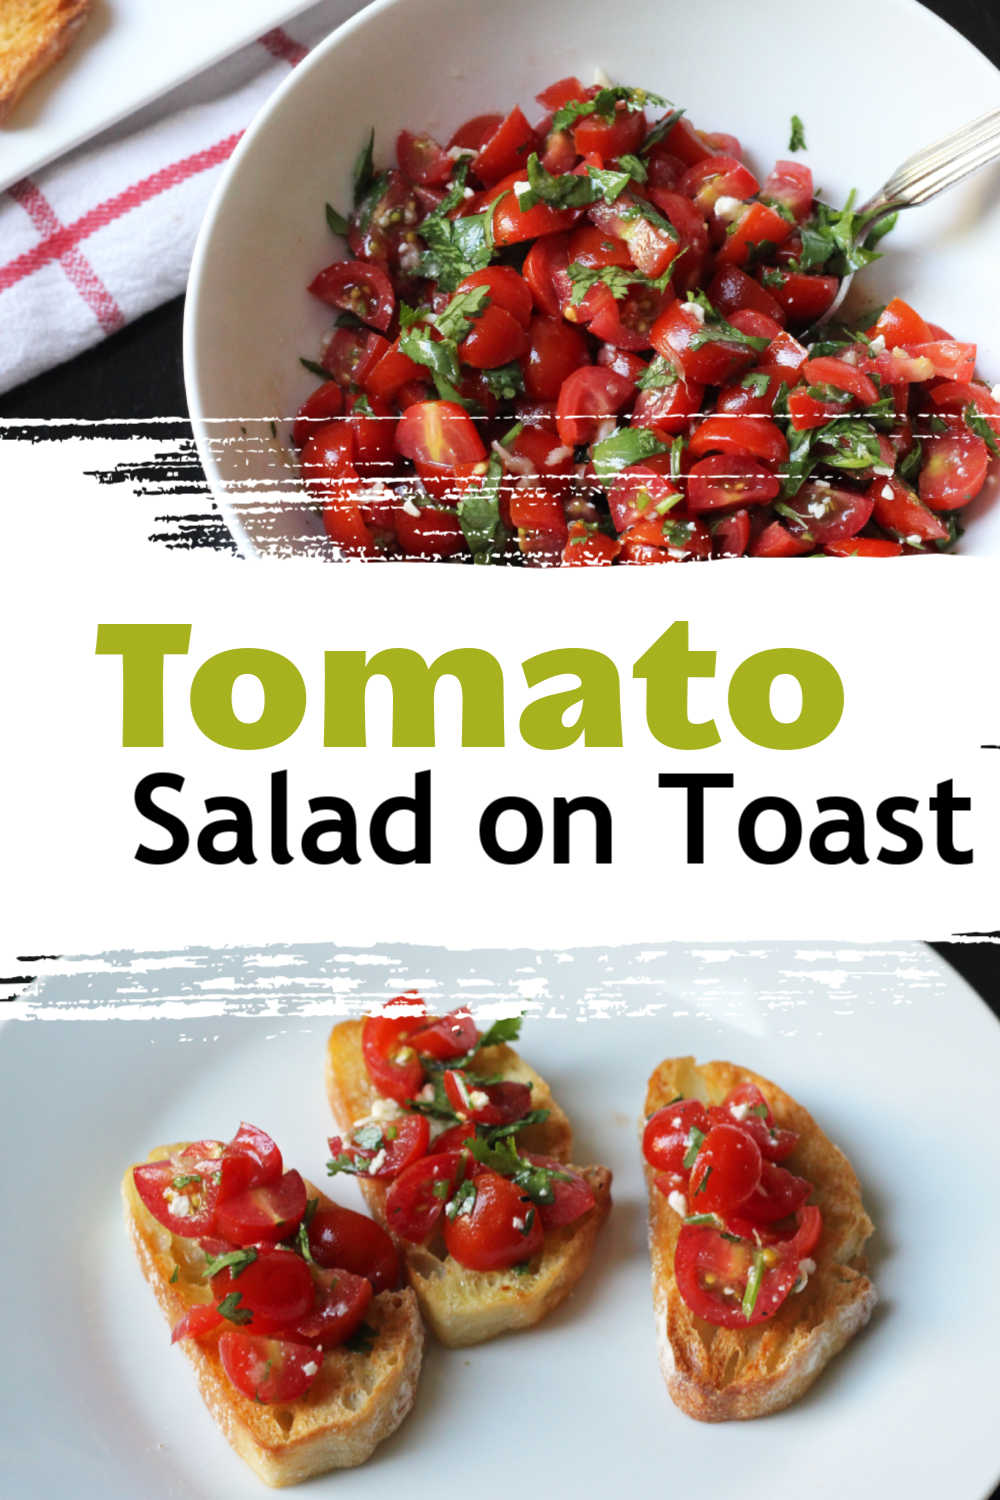 tomato salad in a bowl, with dippers topped with salad